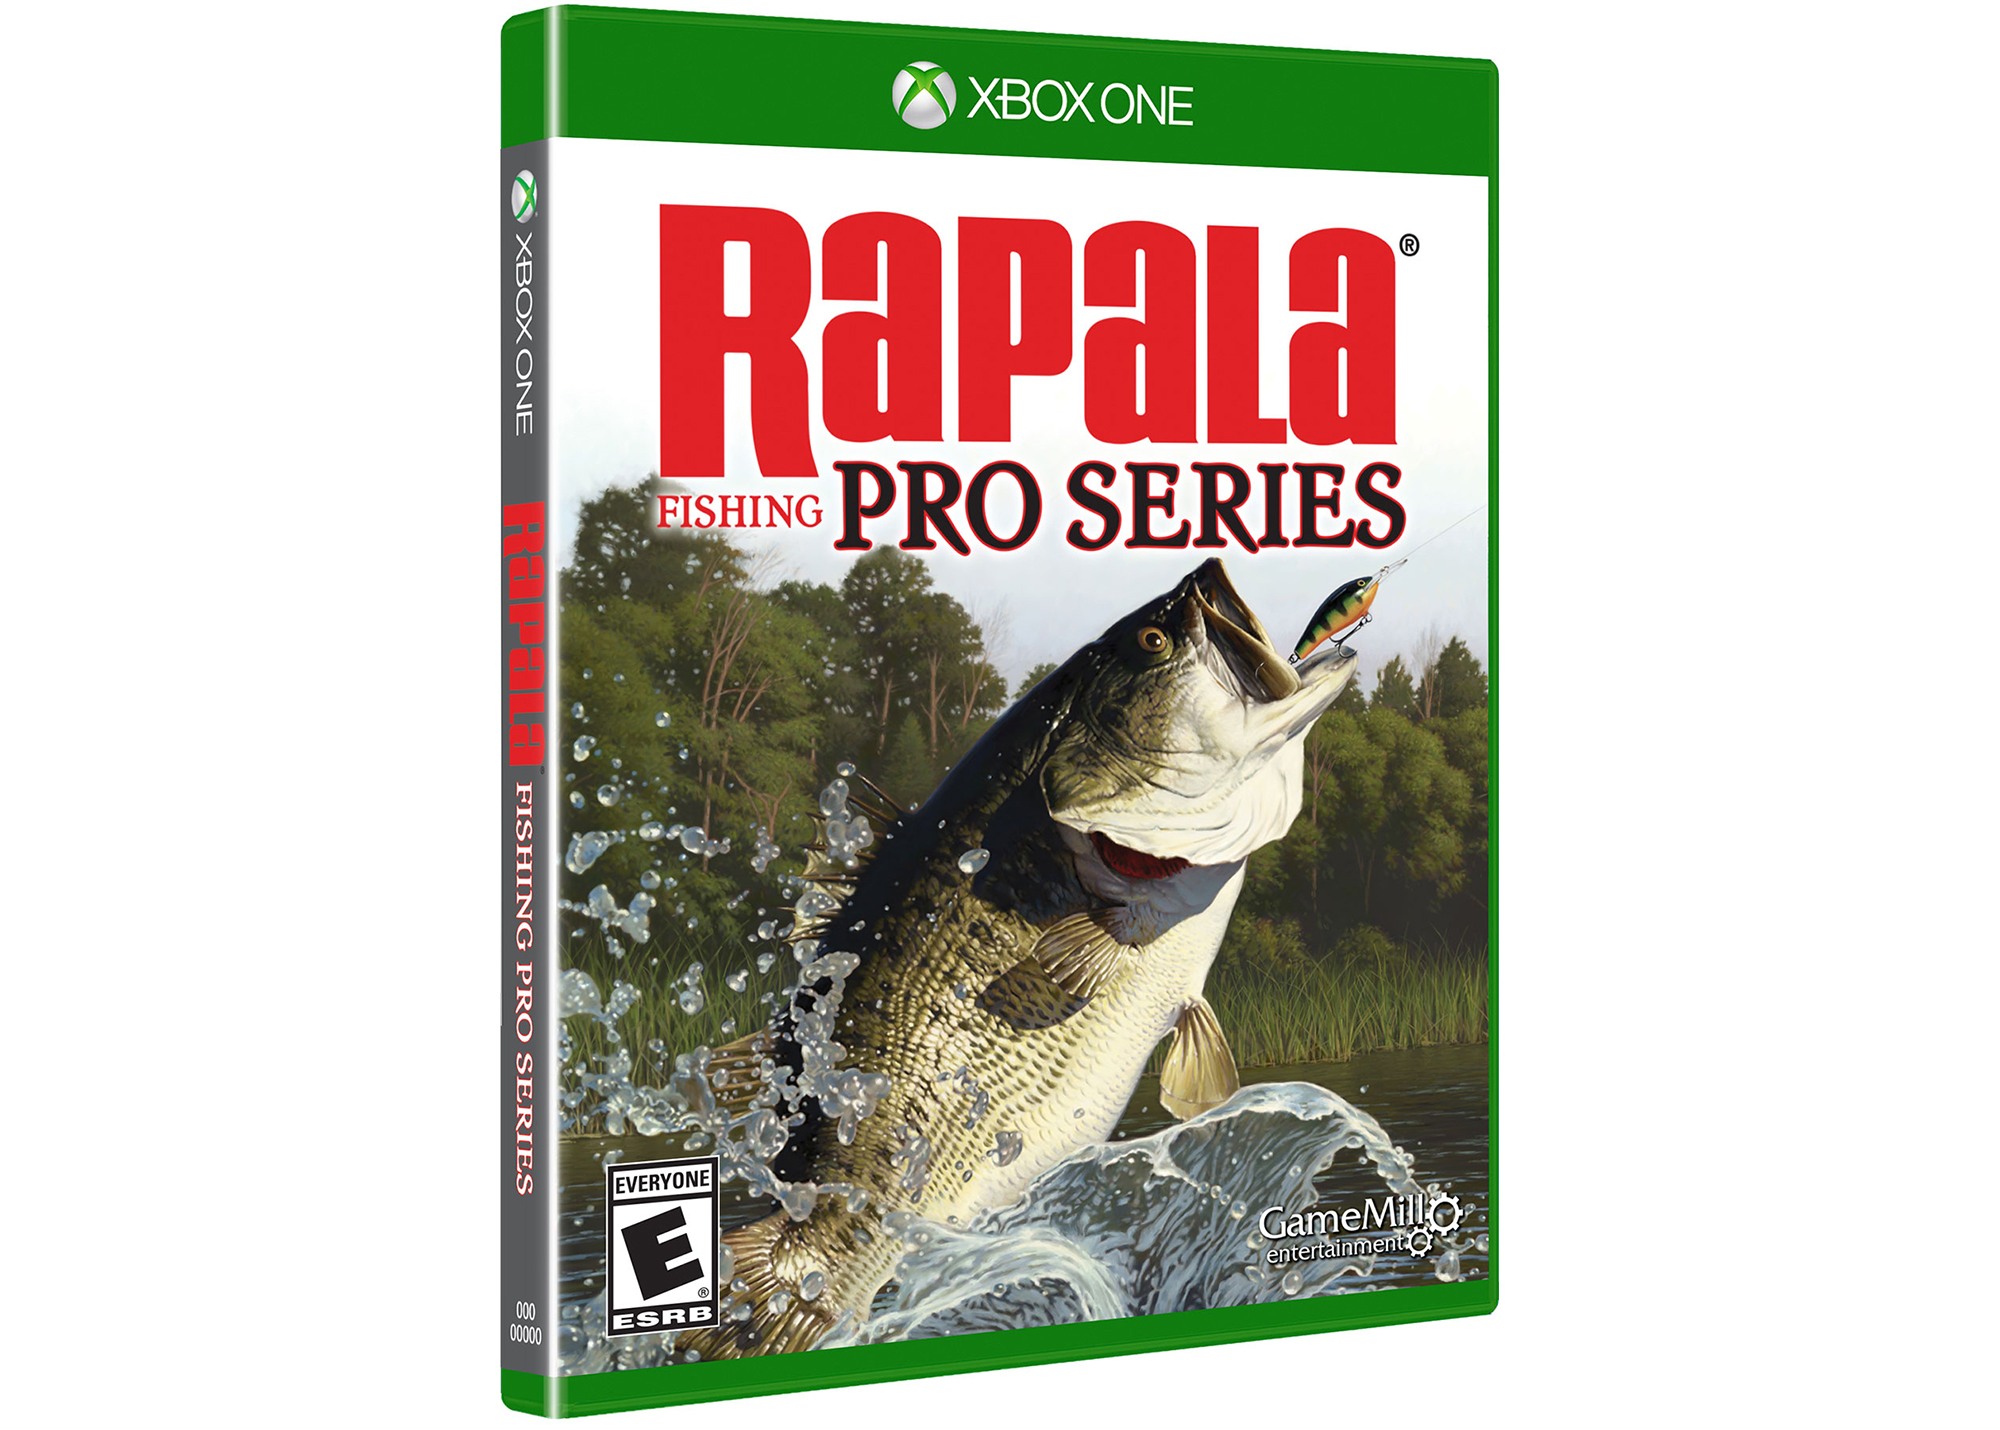 Rapala Fishing Pro Series Xbox One